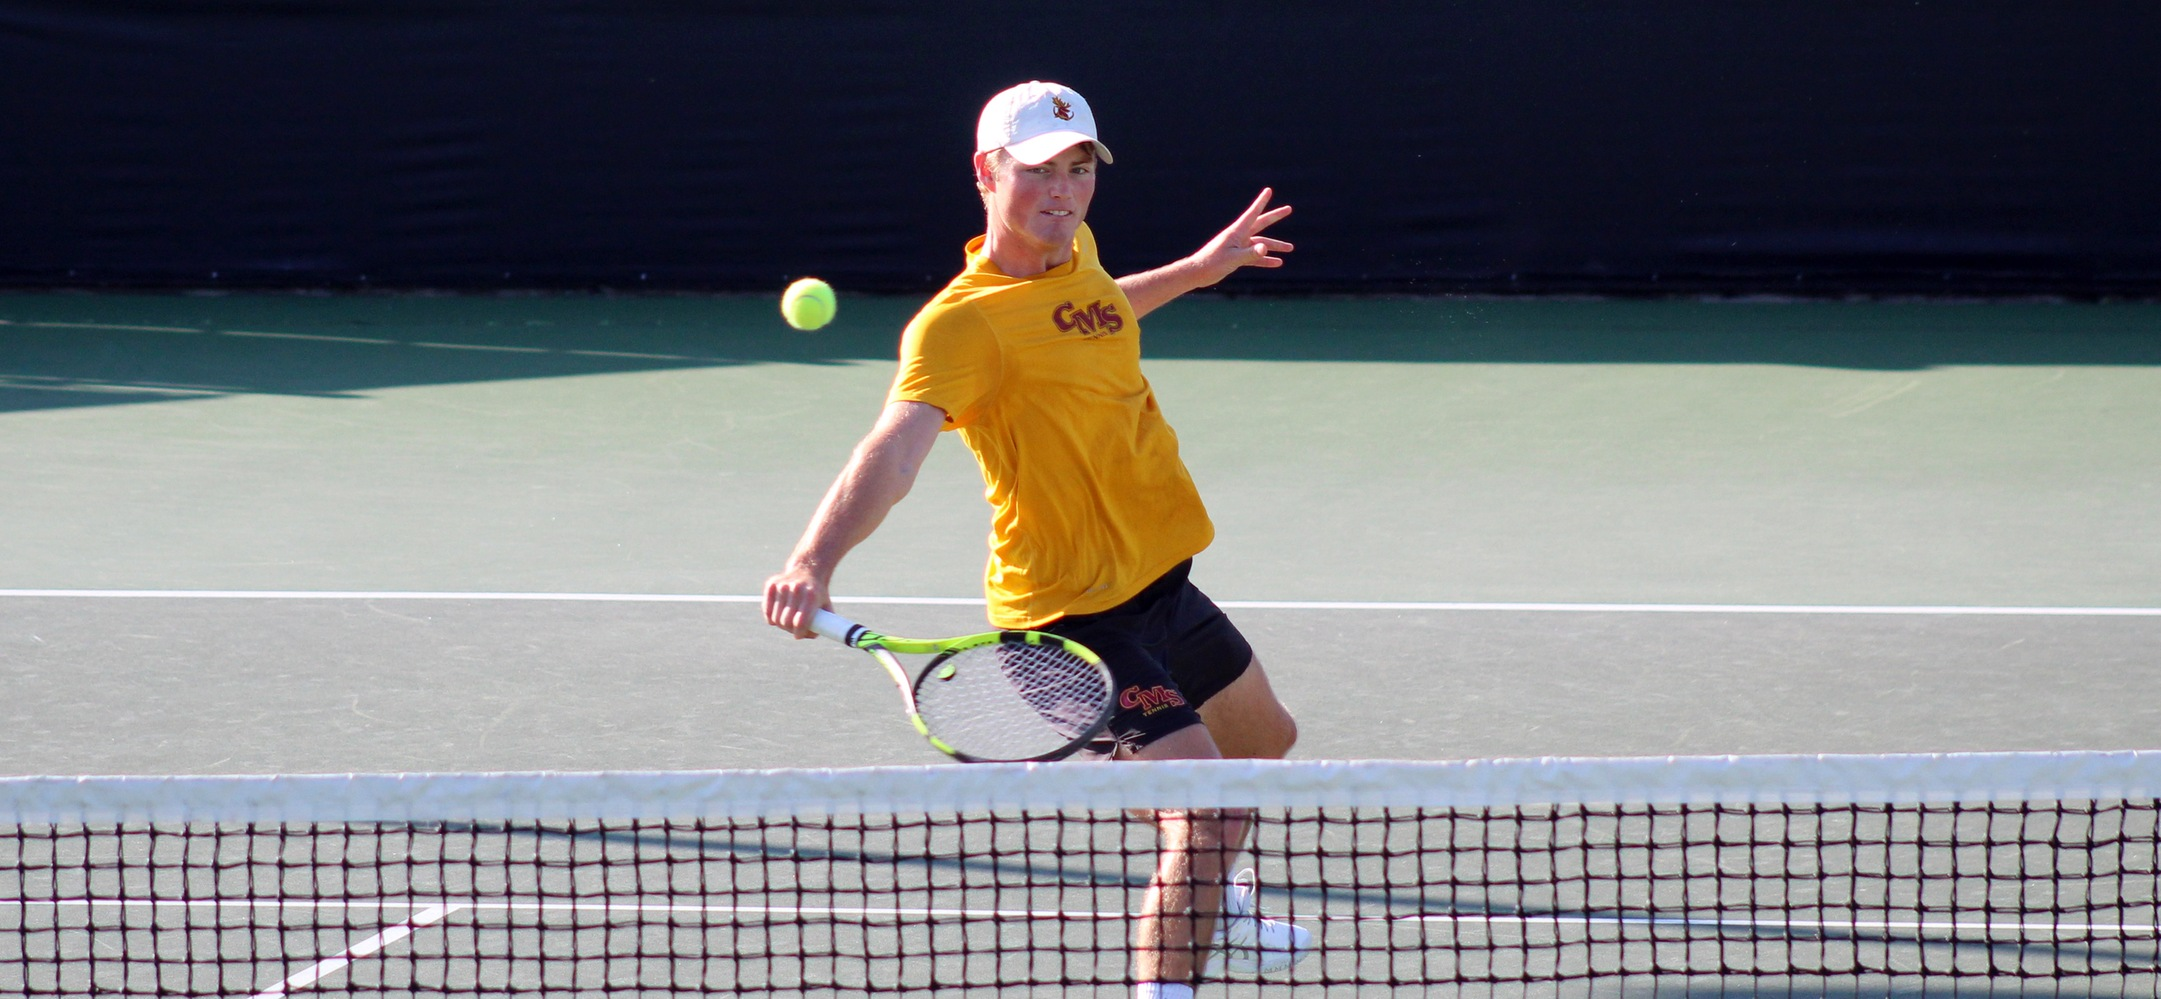 Casey Morris upset the No. 3 seed in the opening round to reach the ITA Quarterfinals